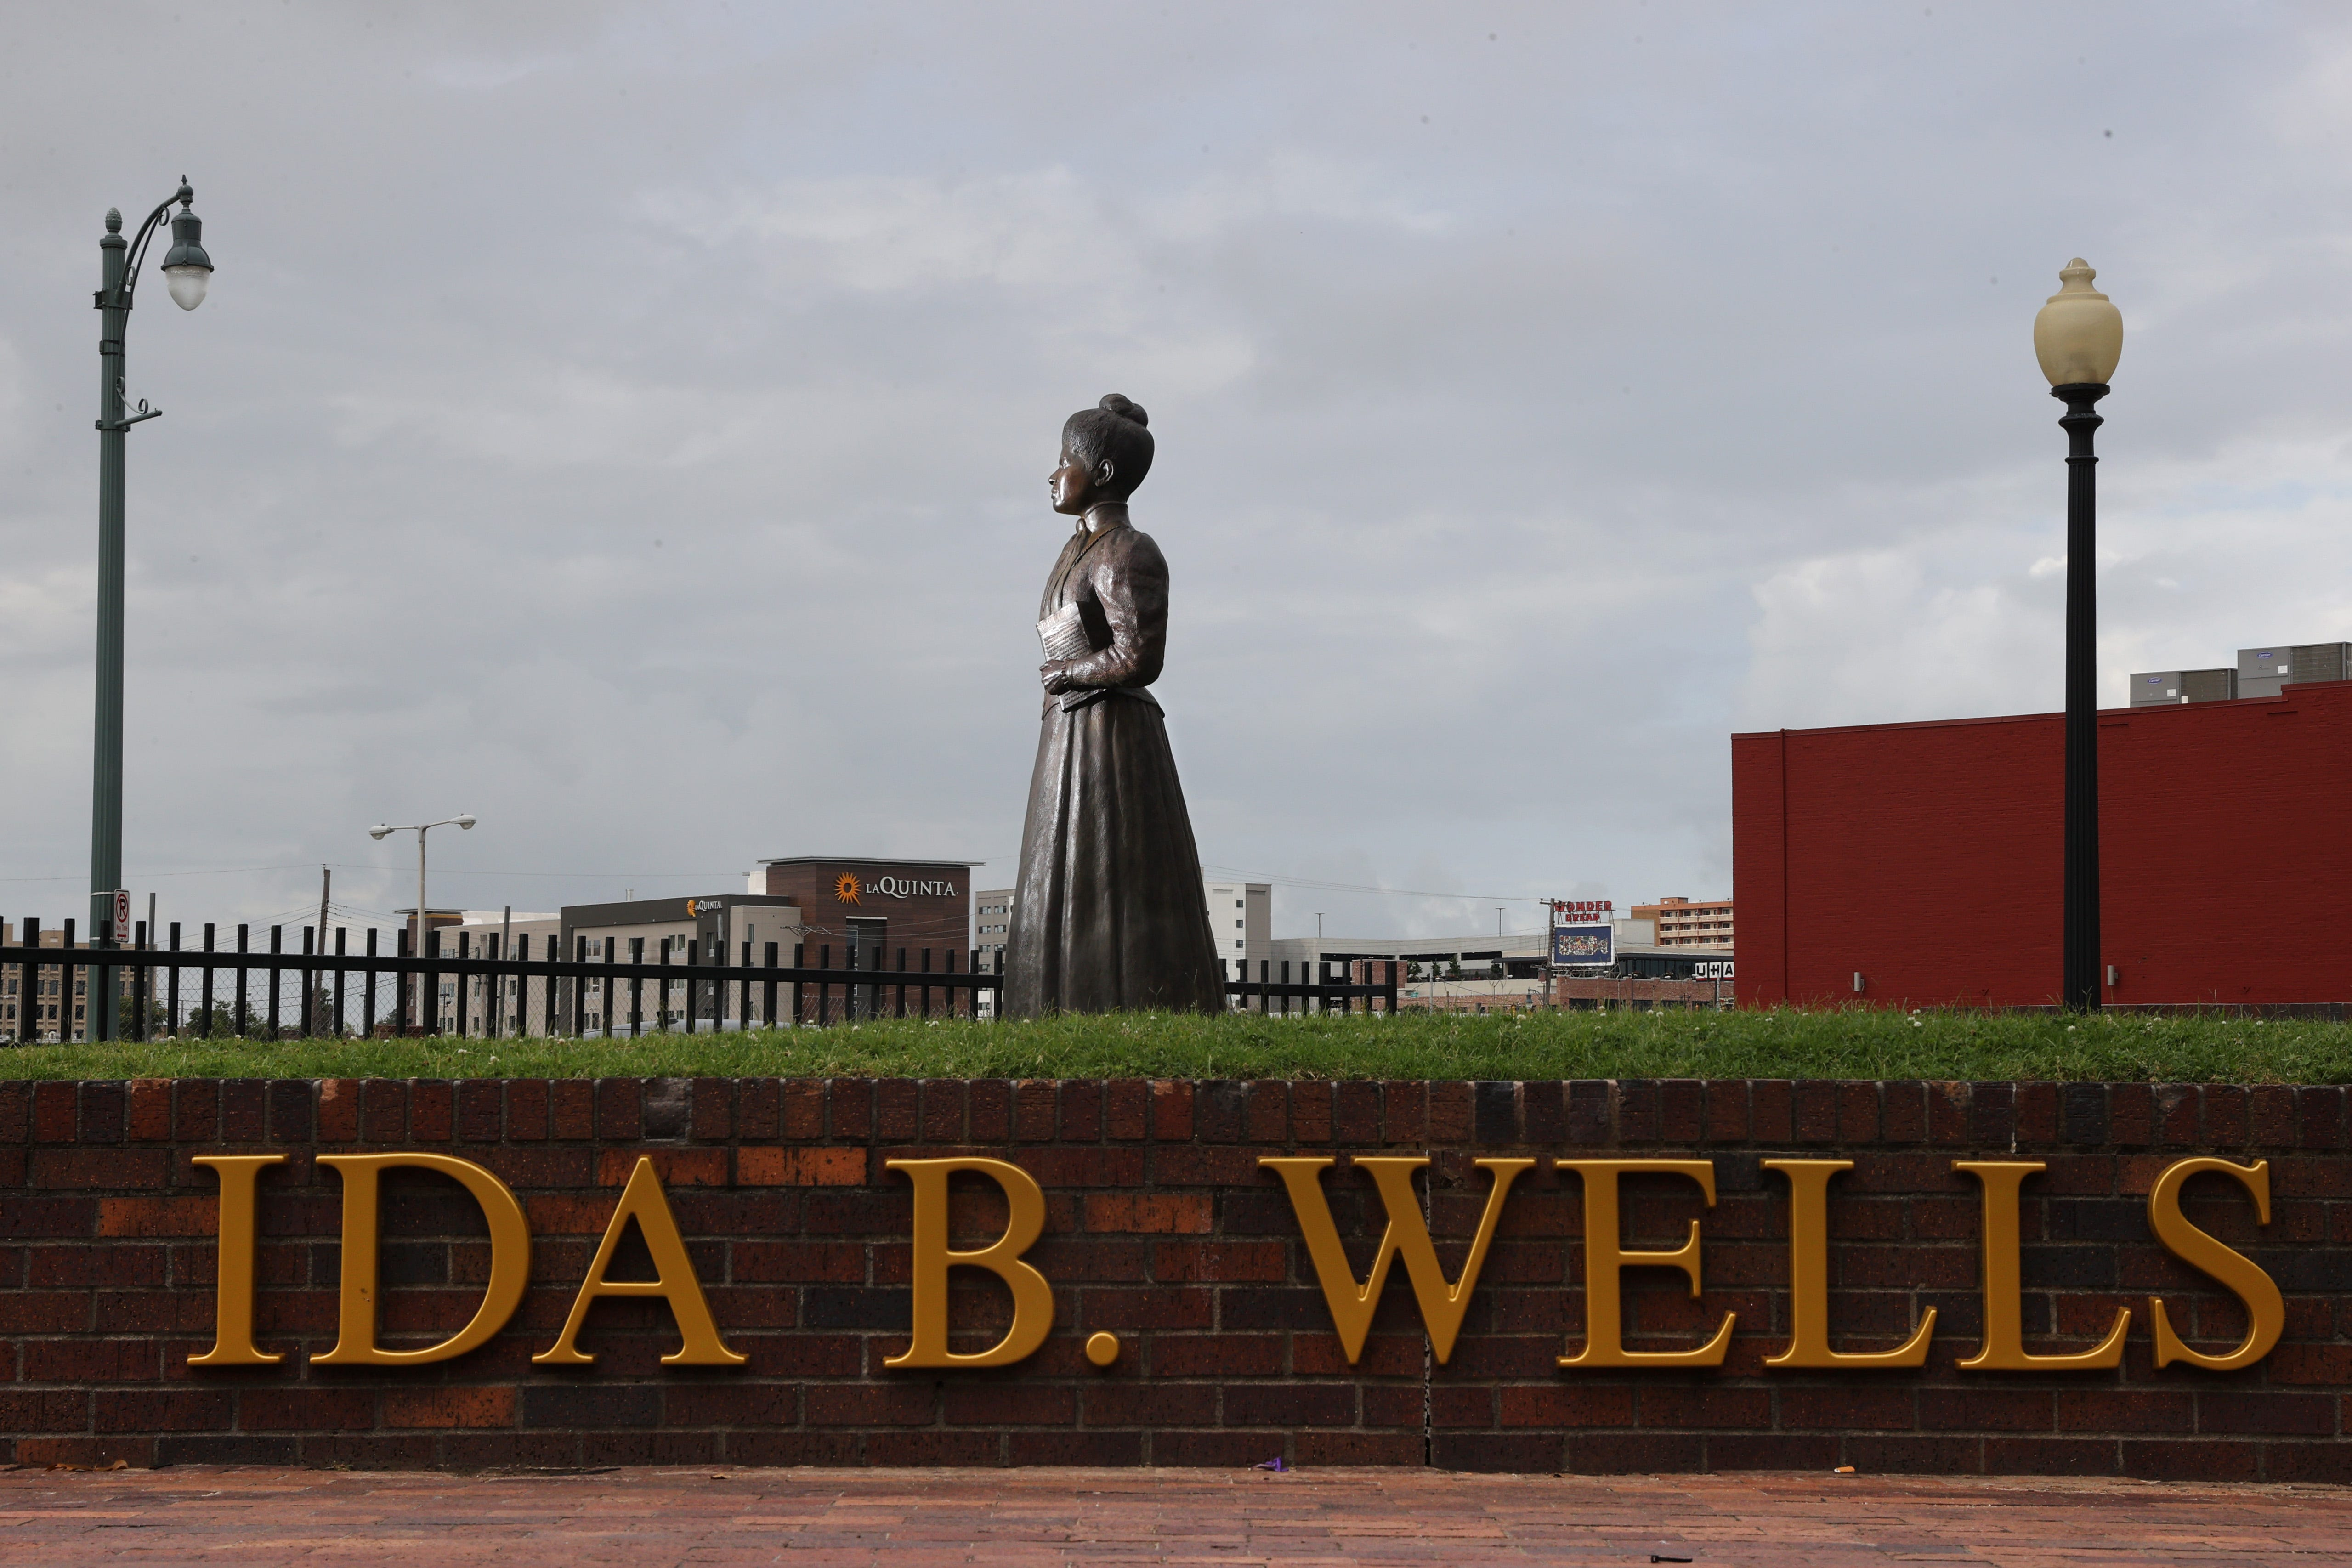 The newest addition to the Downtown Memphis landscape, a statue at the corner of Beale and Fourth Street of Ida B. Wells, the pioneering journalist, educator and civil rights advocate.